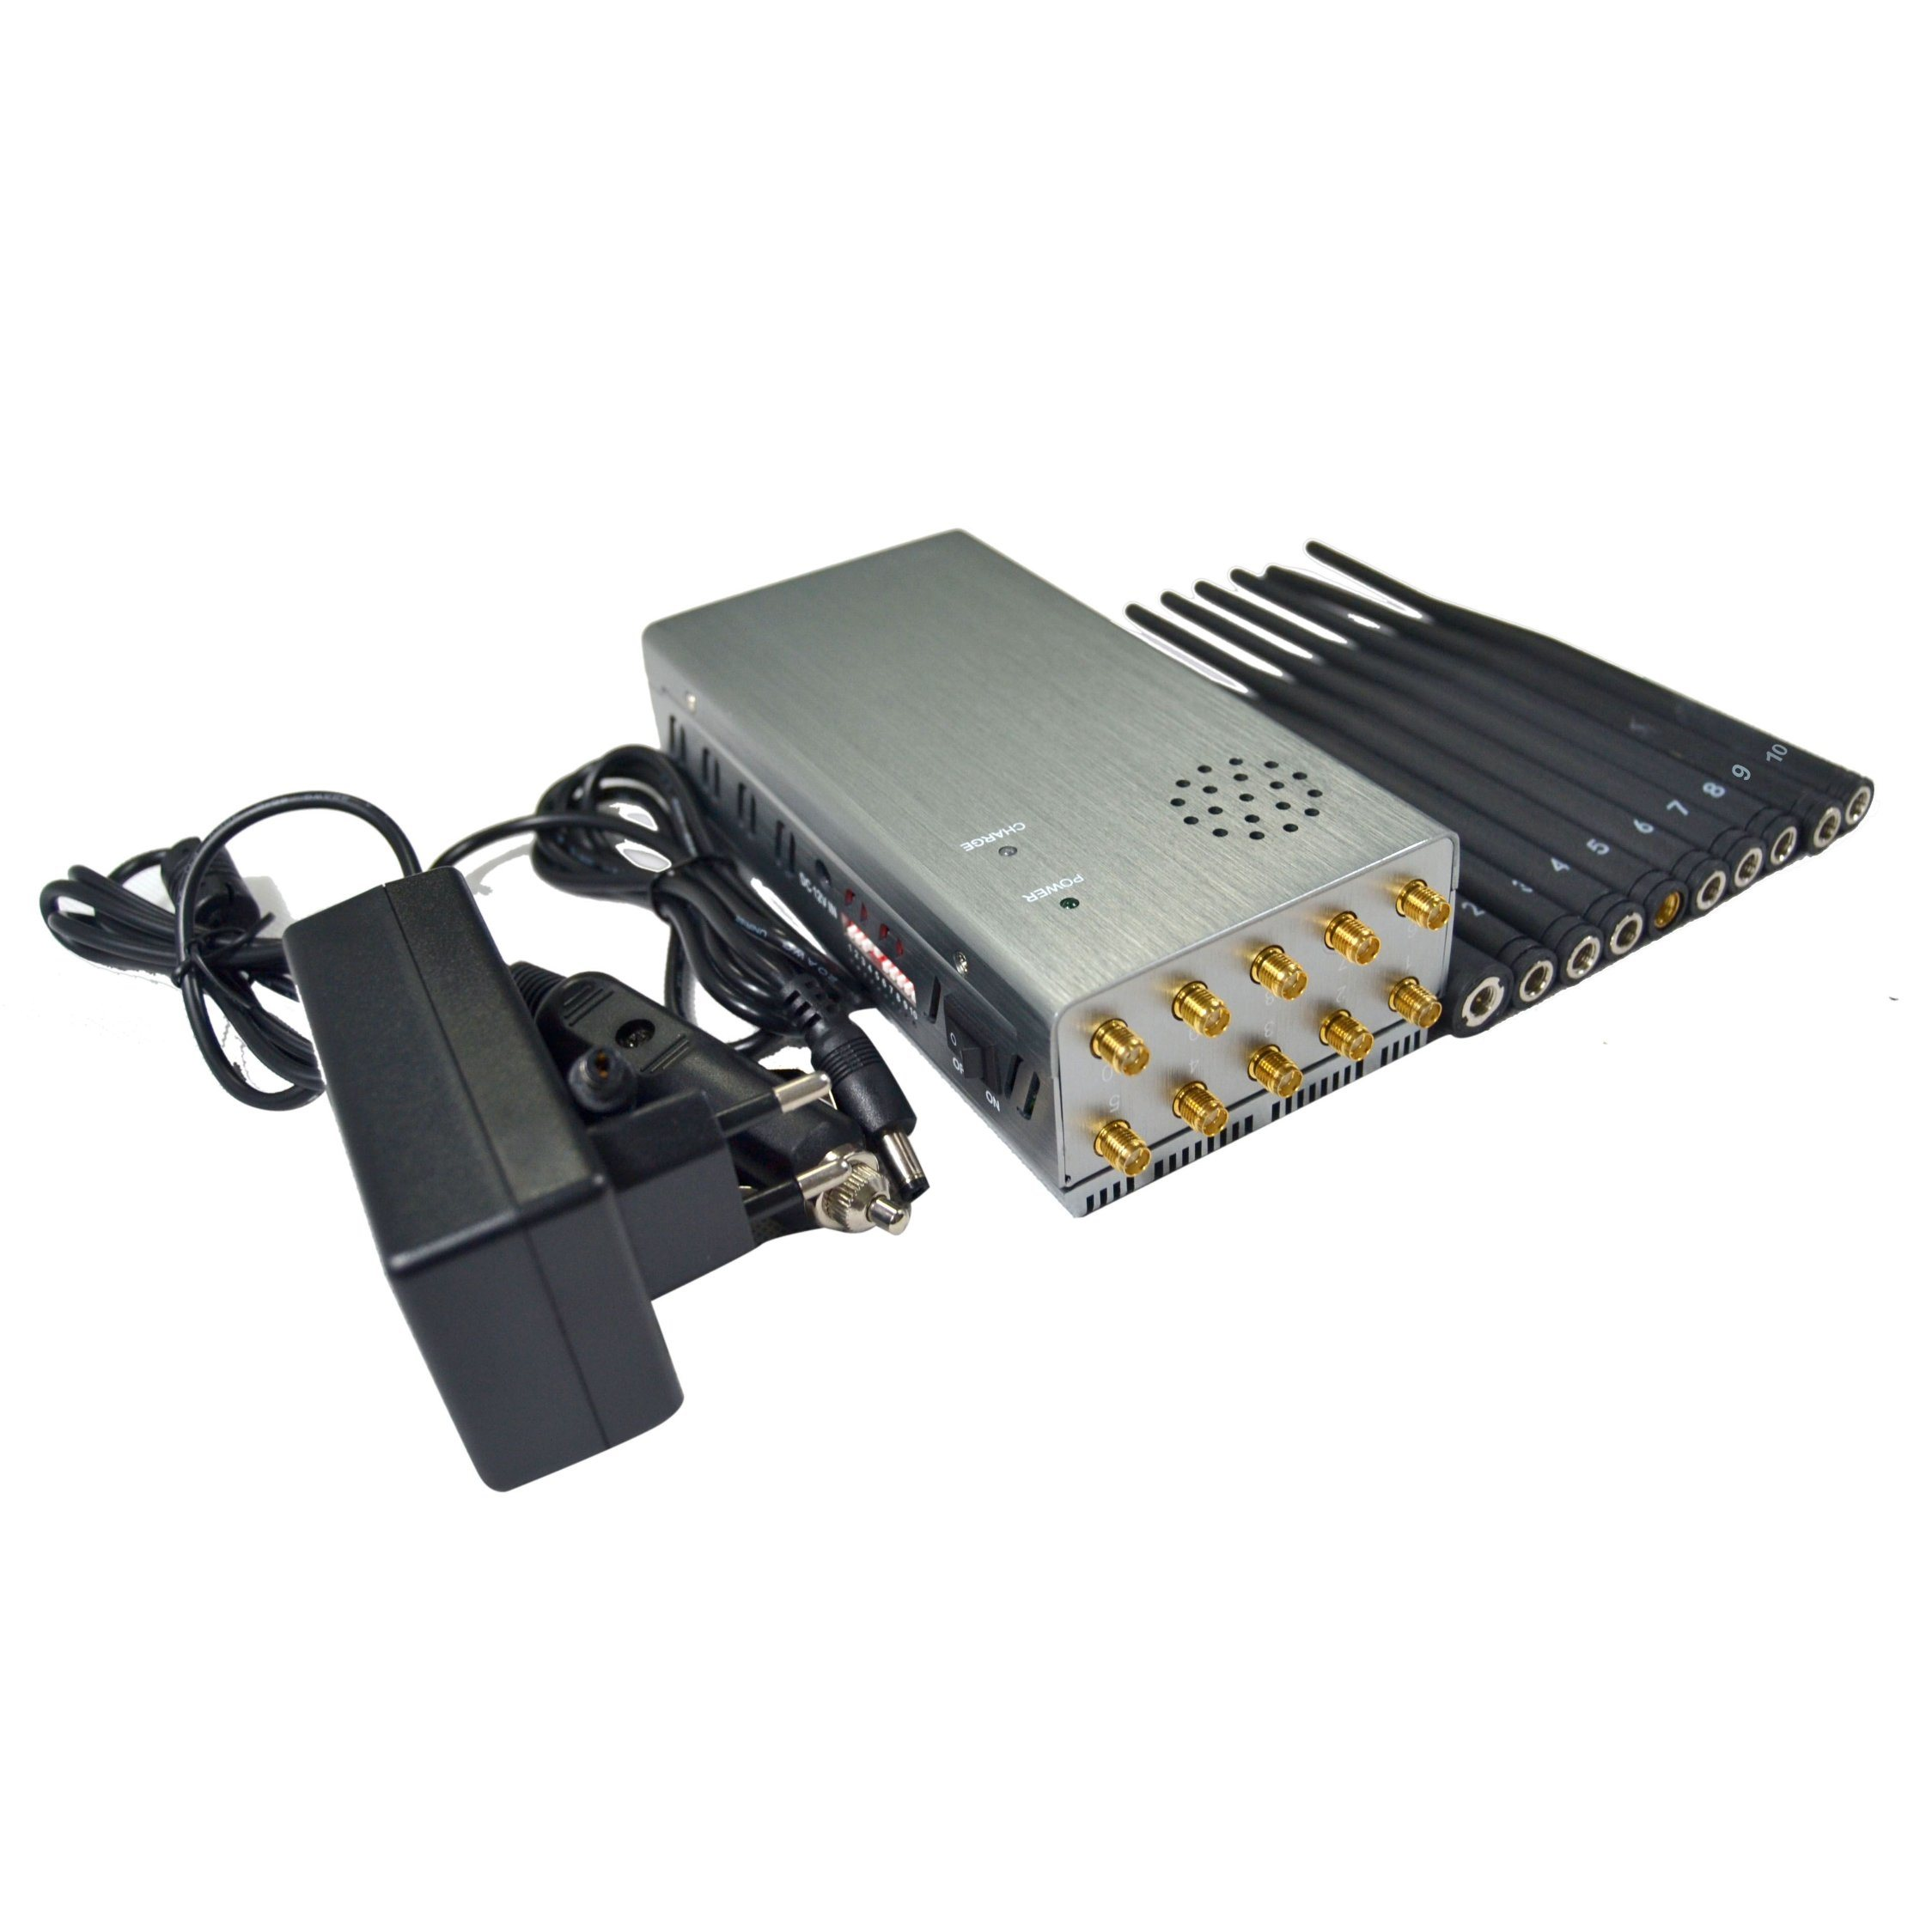 China The King of Portable Jammers with 8000mA and 10 Antennas Including 2g 3G 4G 5g GPS 433MHz315MHz868MHz WiFi - China 8000mA Battery Jammer, Large Volume Power Signal Blocker